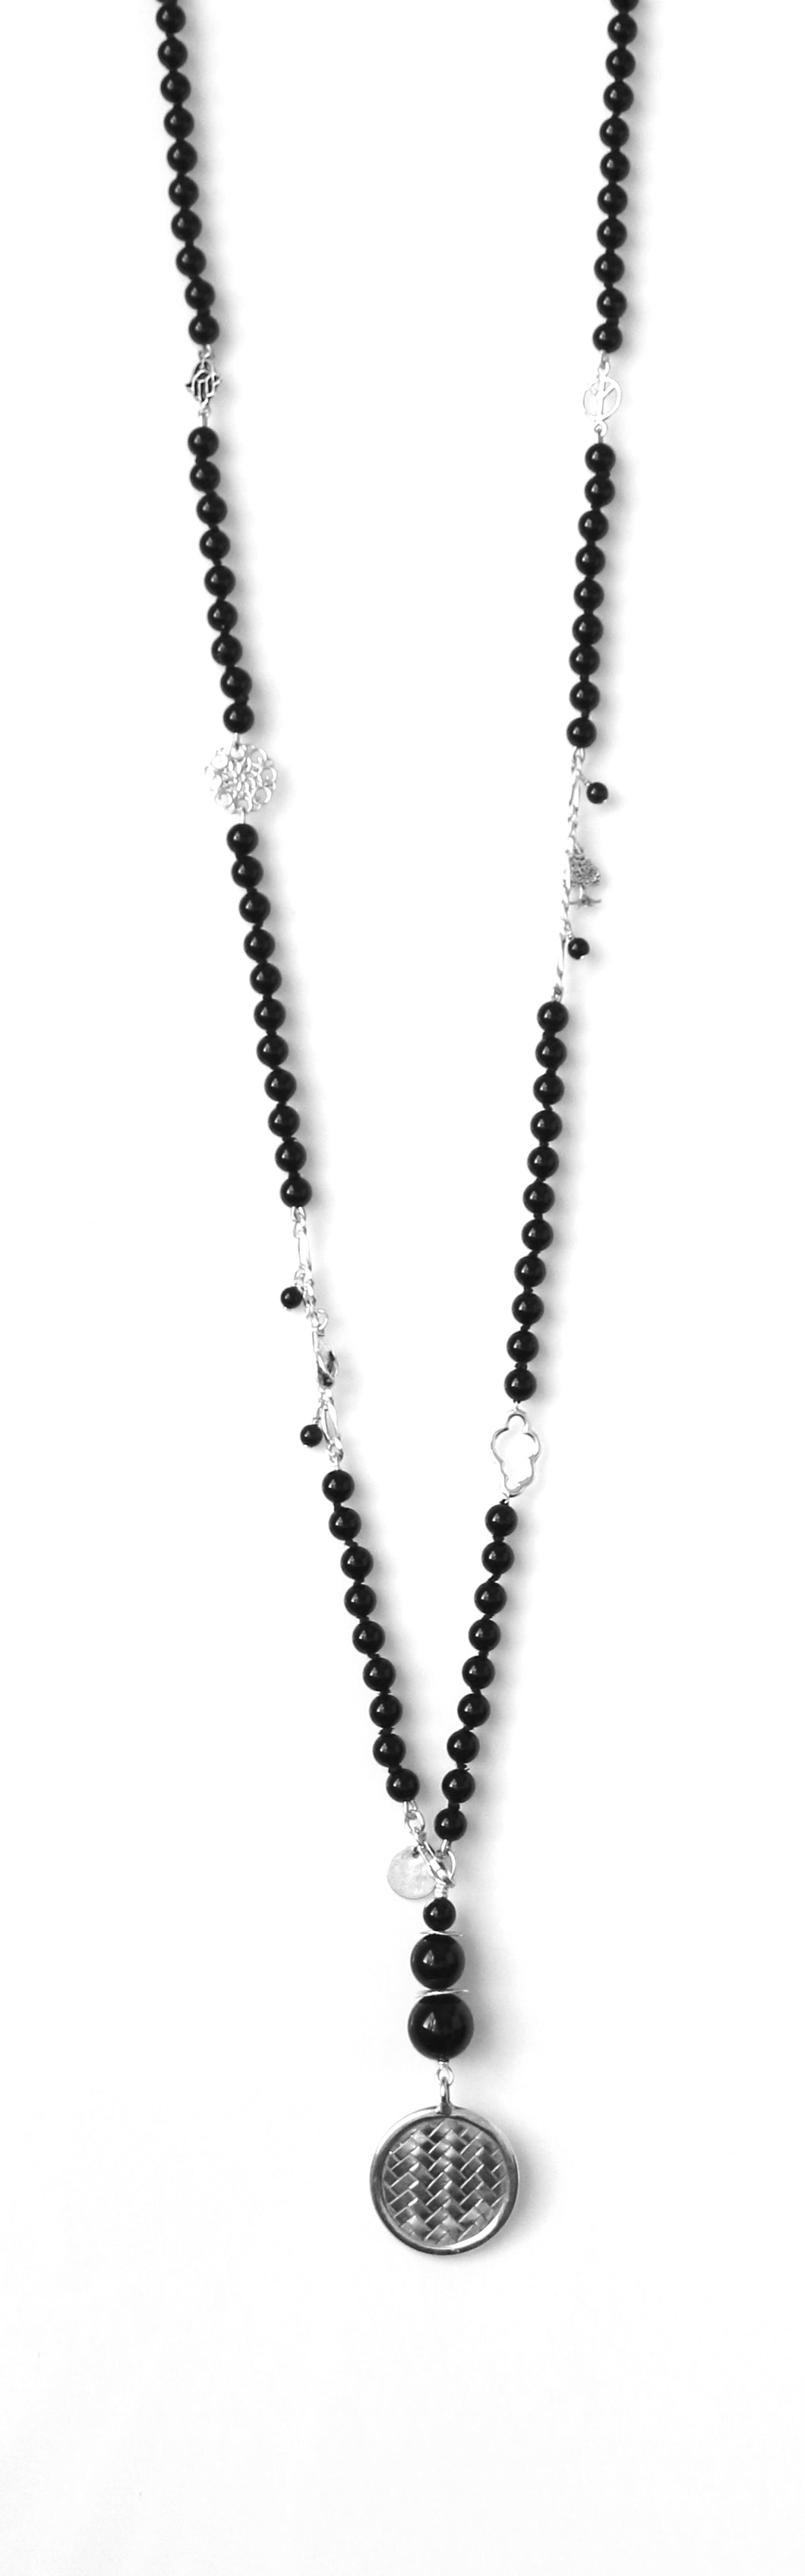 Australian Handmade Black Onyx and Sterling Silver Necklace